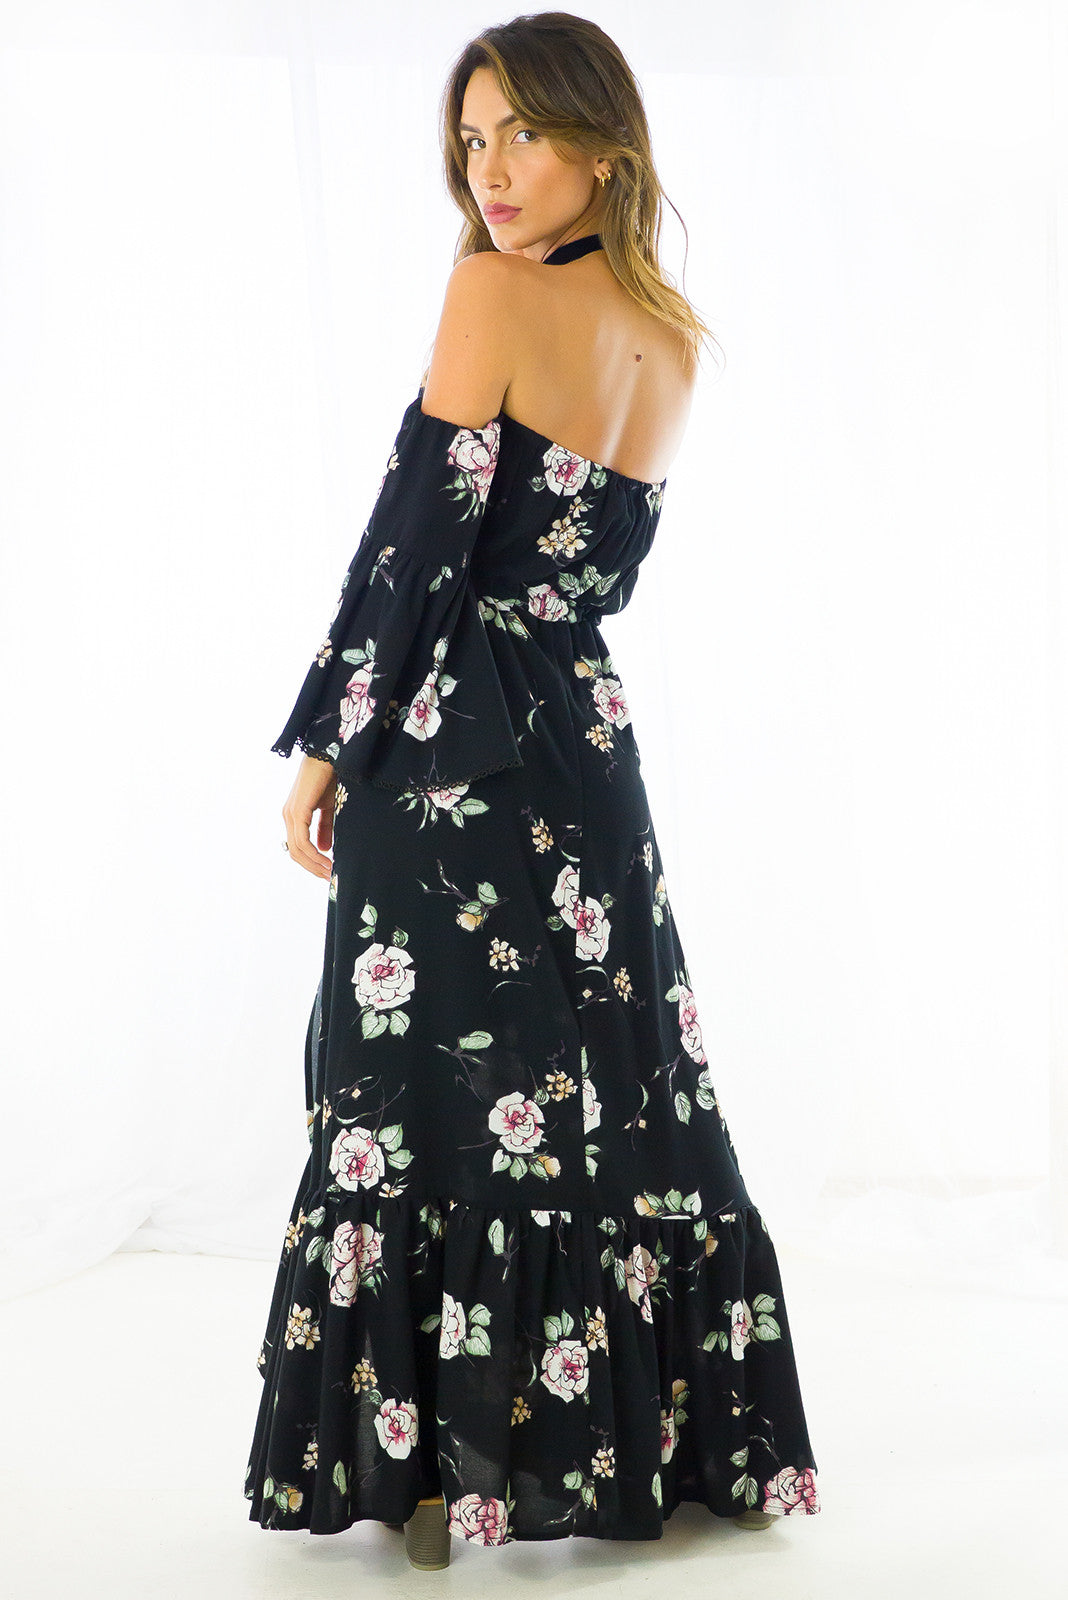 Off the shoulder Romance waisted maxi dress in black floral print